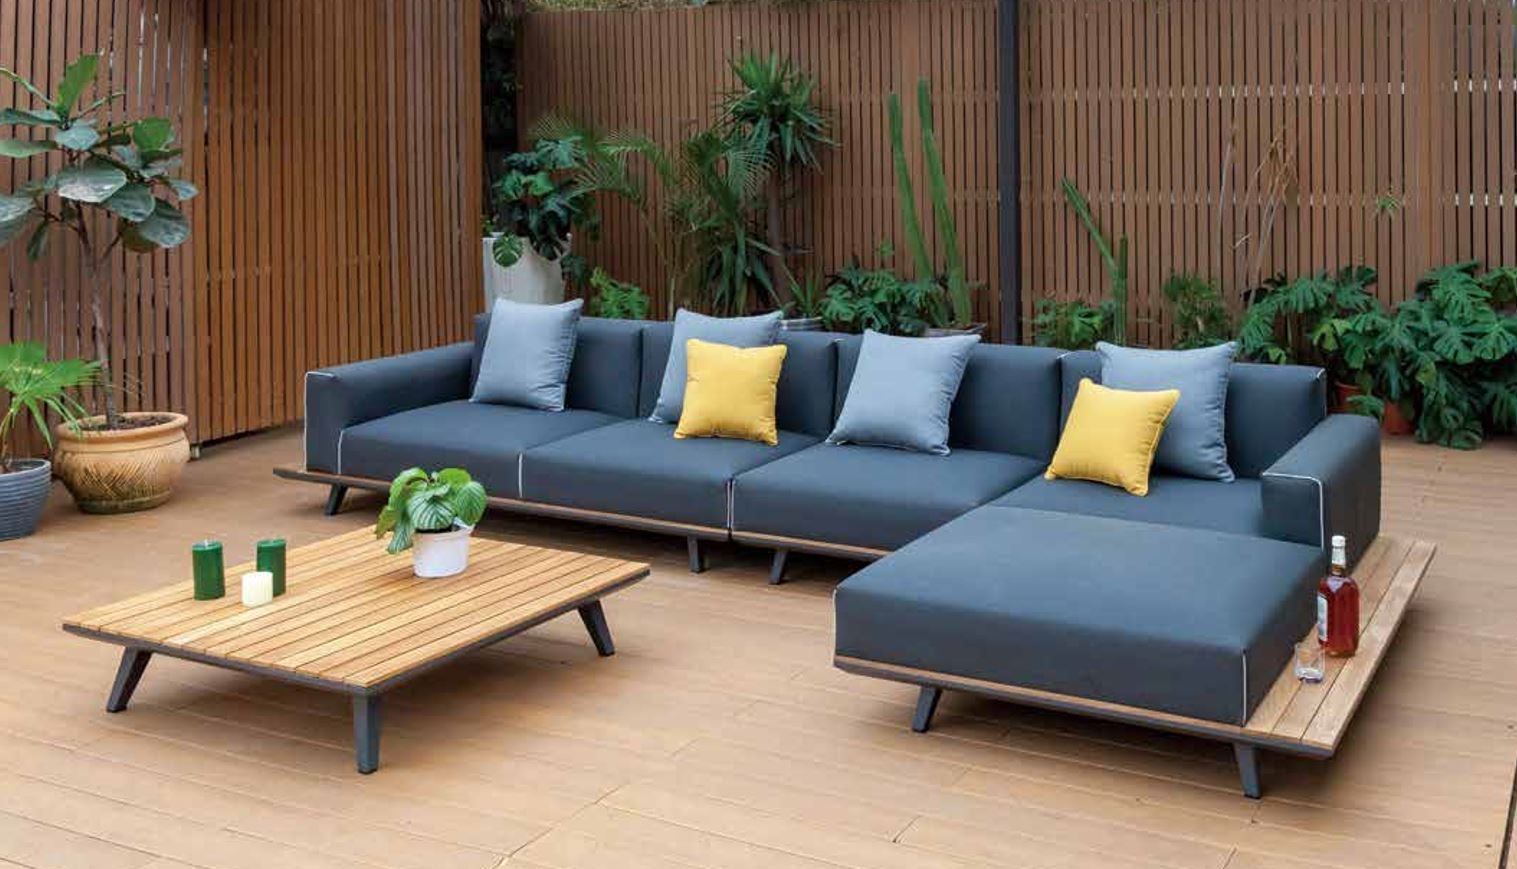 Beautiful Outdoor Sofa Set From Mondecasa Loft Collection In 2020 Outdoor Sofa Sets Contemporary Outdoor Furniture